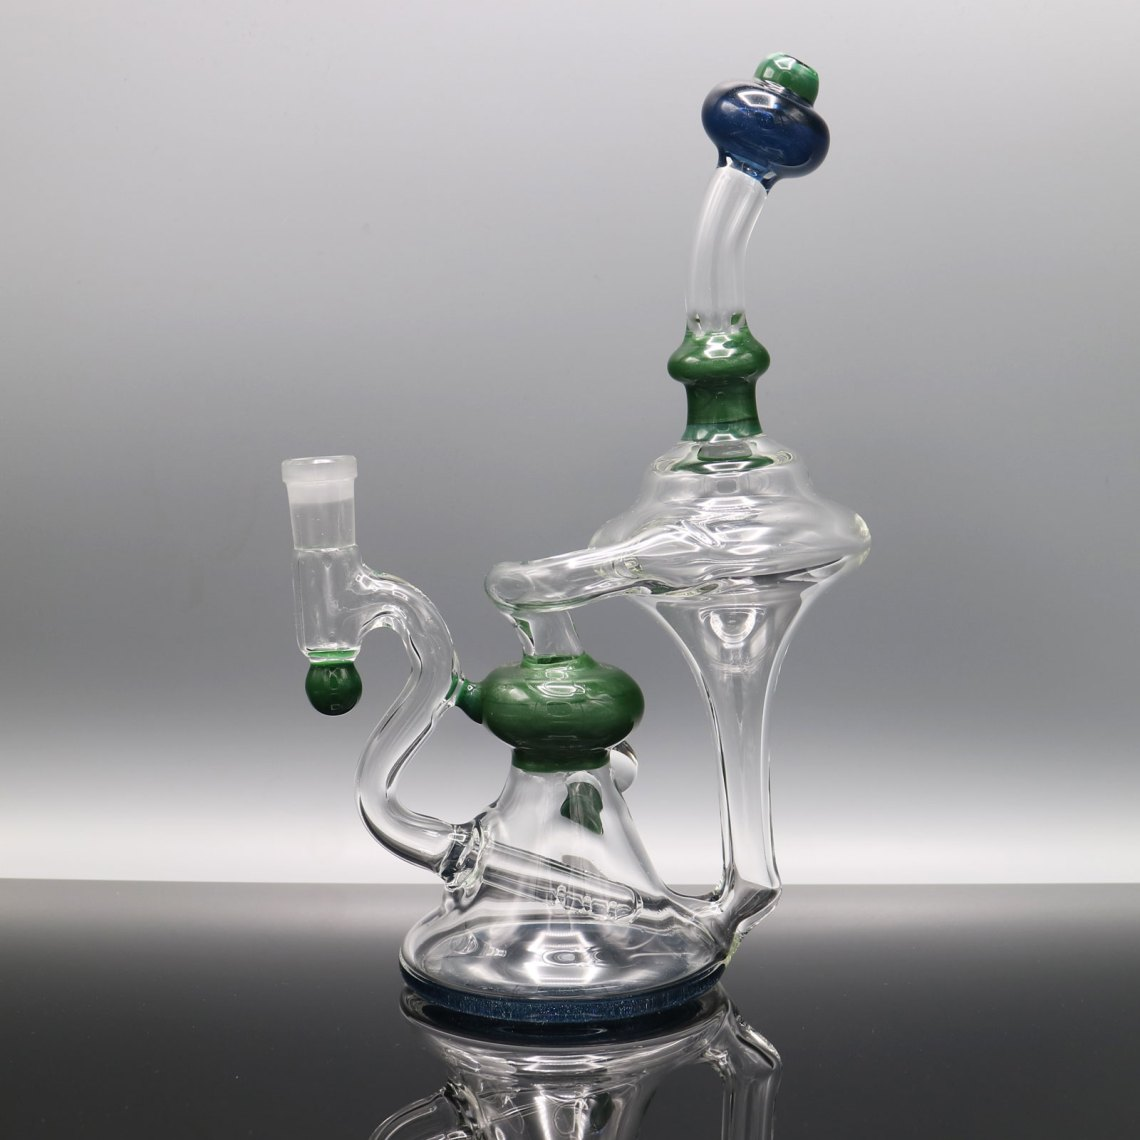 Chappell Glass – Green and Blue Recycler